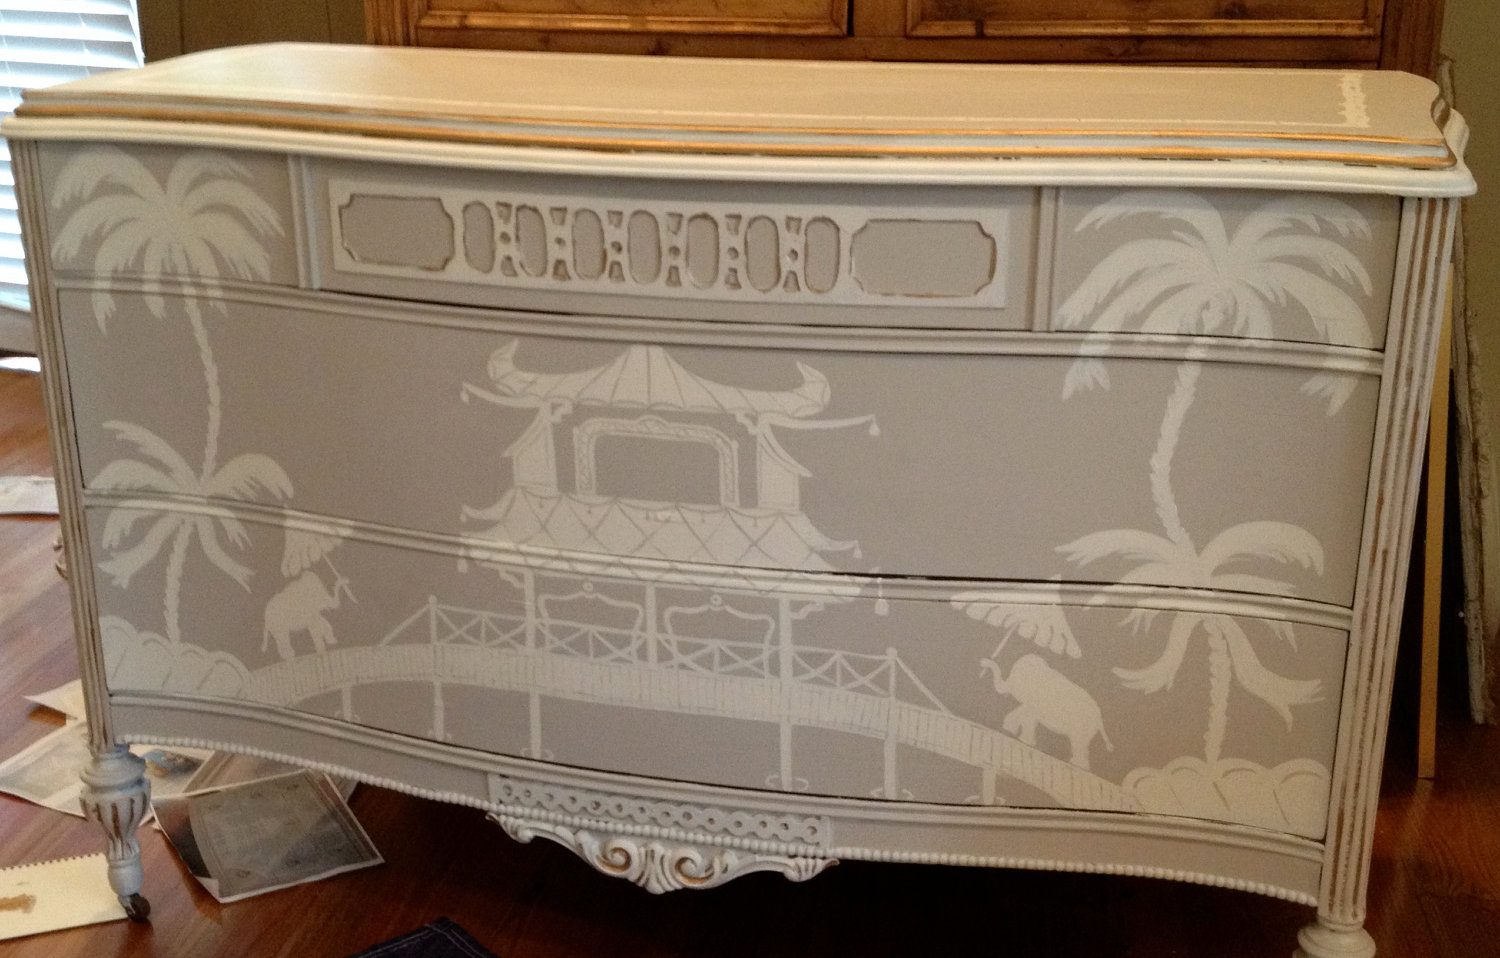 Childs-Chinoiserie-Dresser-via-Pinktique-on-Etsy-wallpaper-wp4604691-2